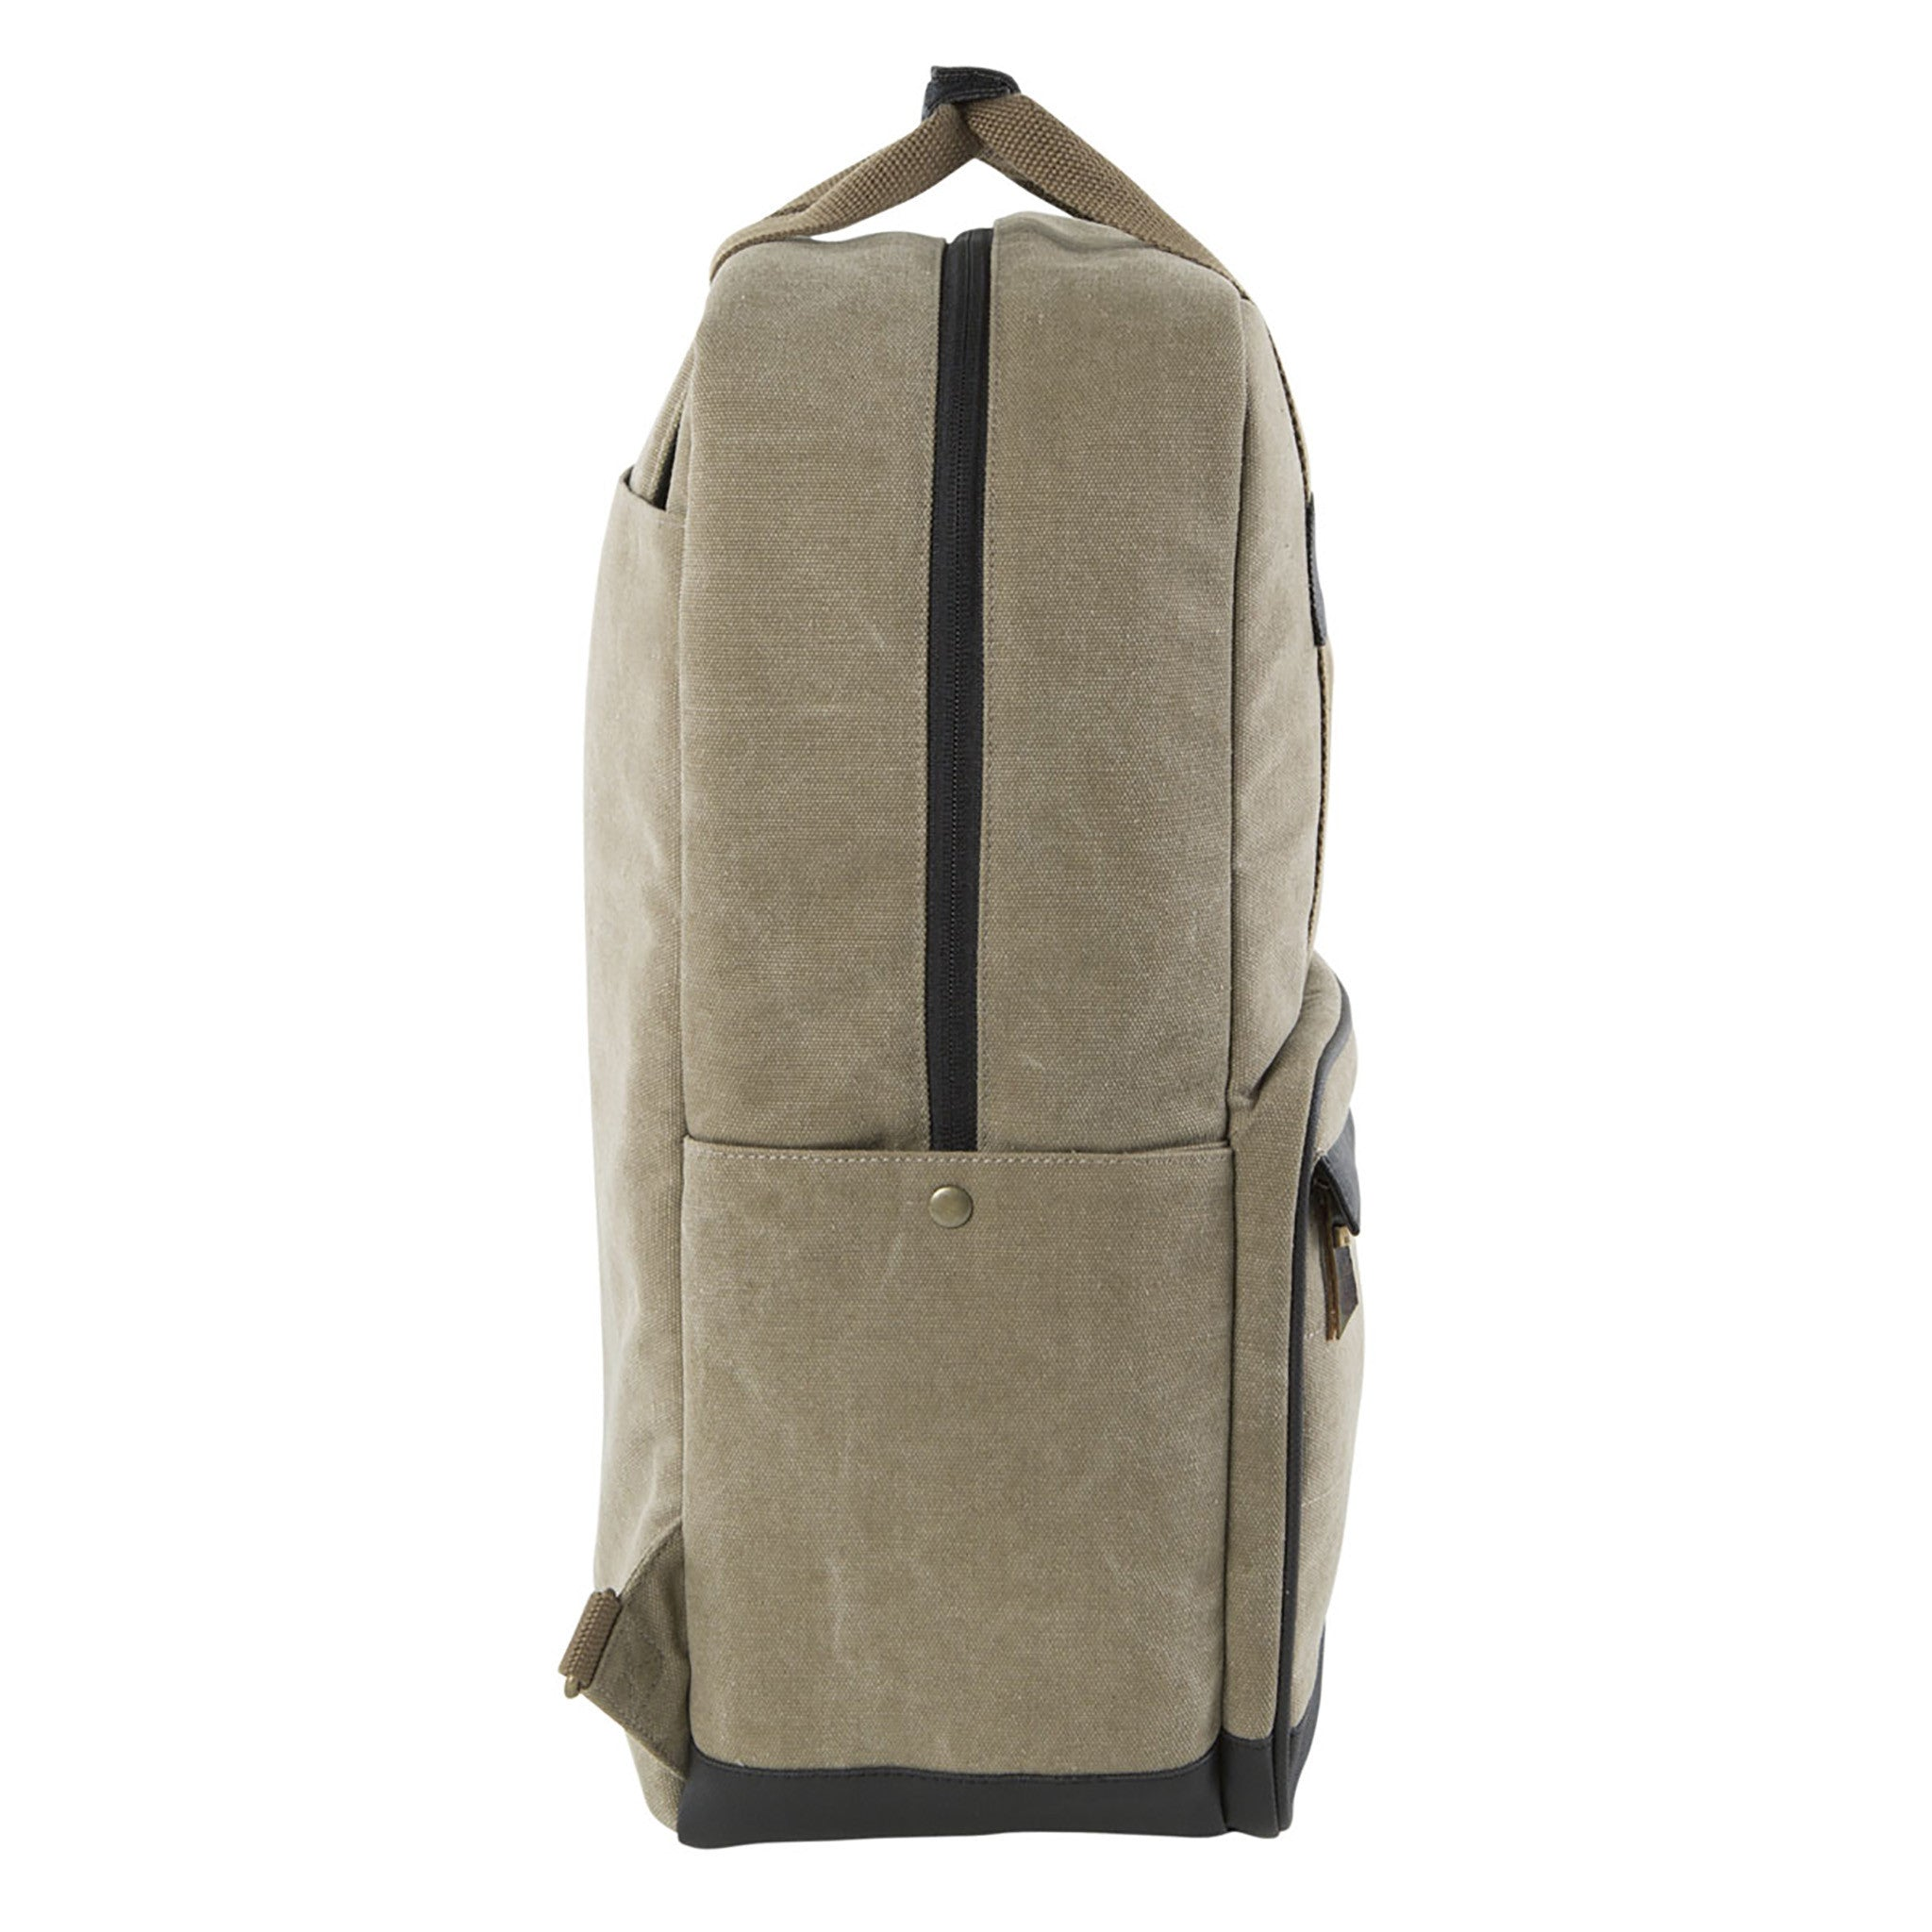 Infinity Convertible Backpack - HEX